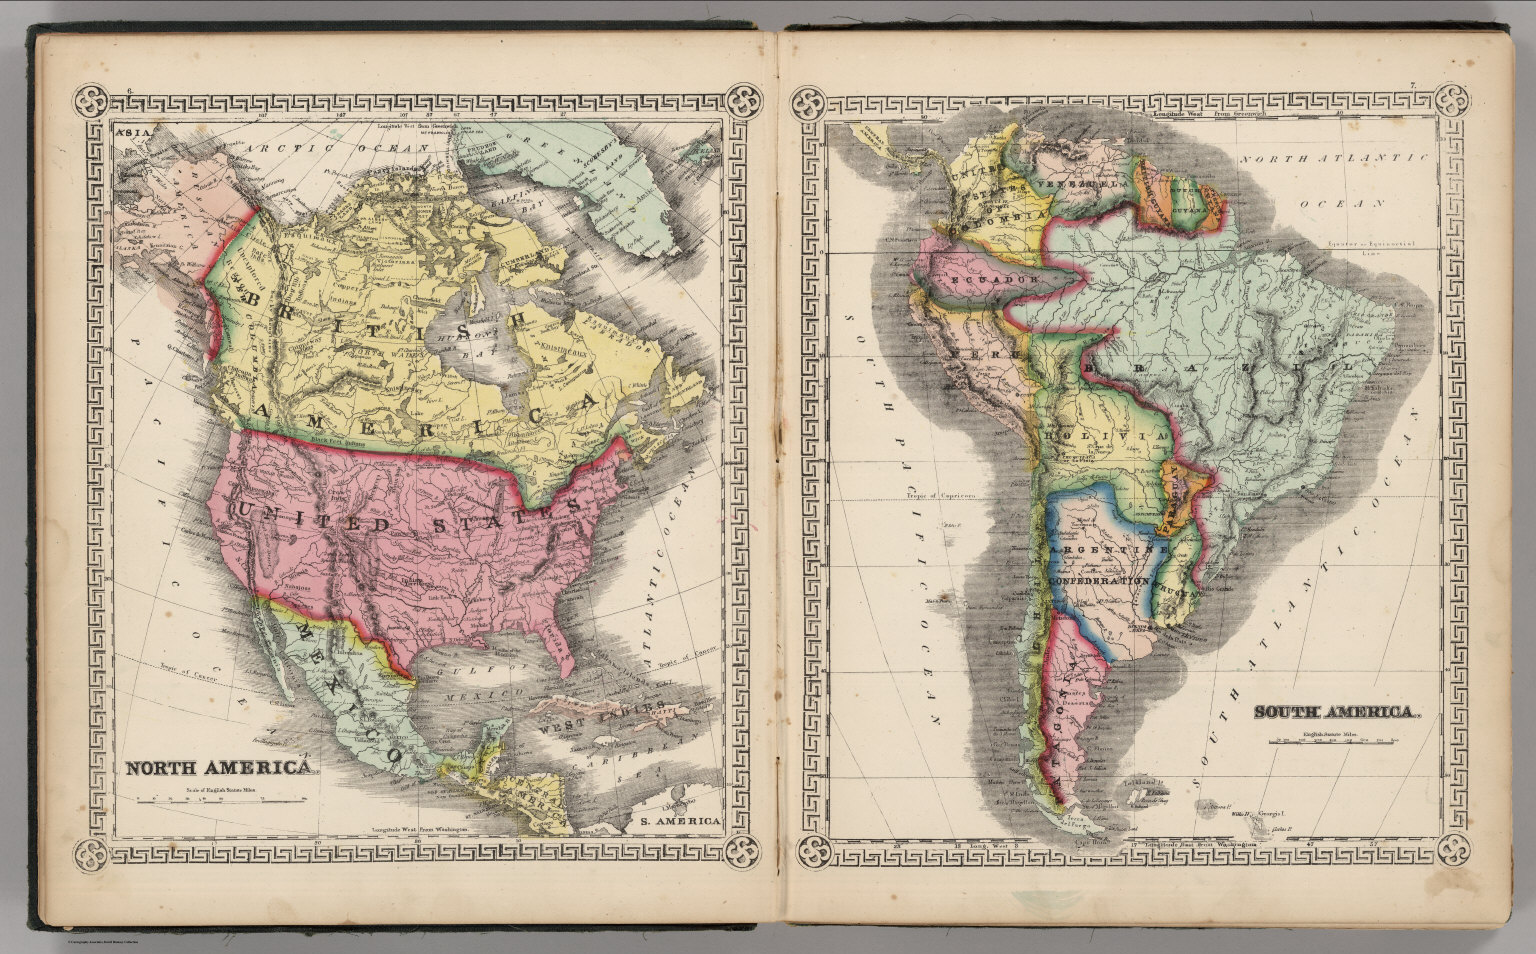 North America South America David Rumsey Historical Map Collection